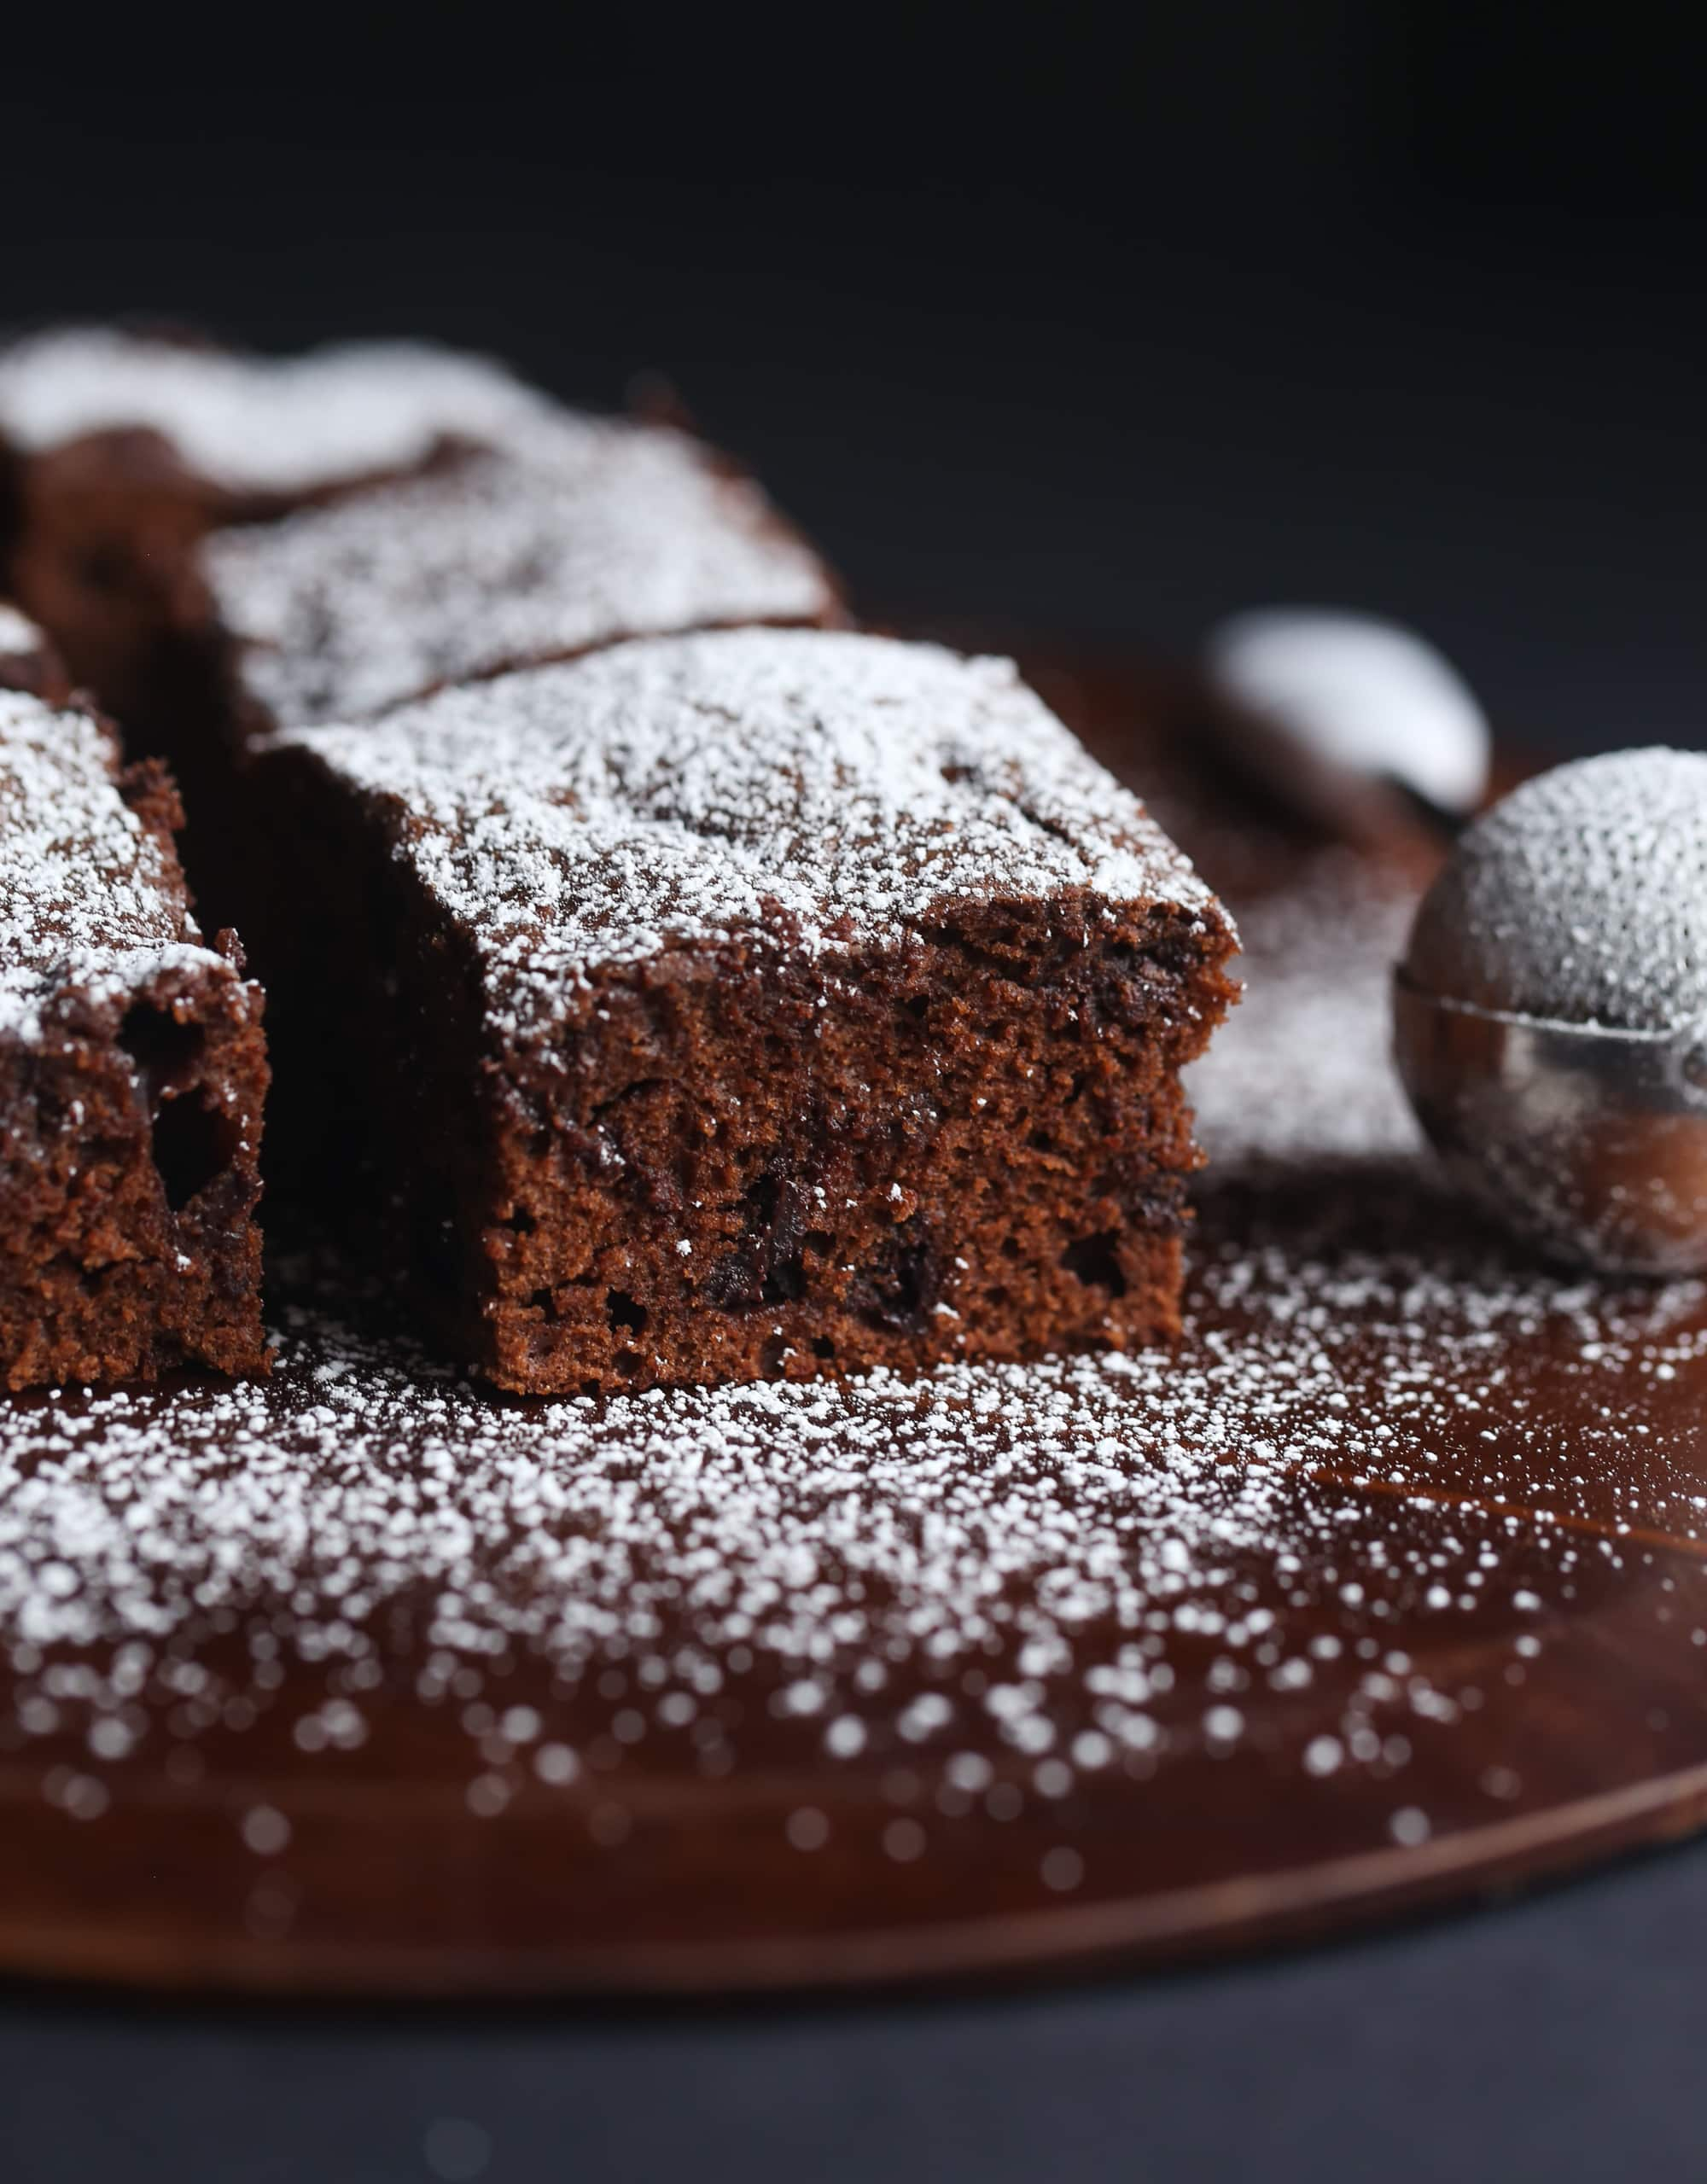 Sour Cream Chocolate Cake - Cookies and Cups